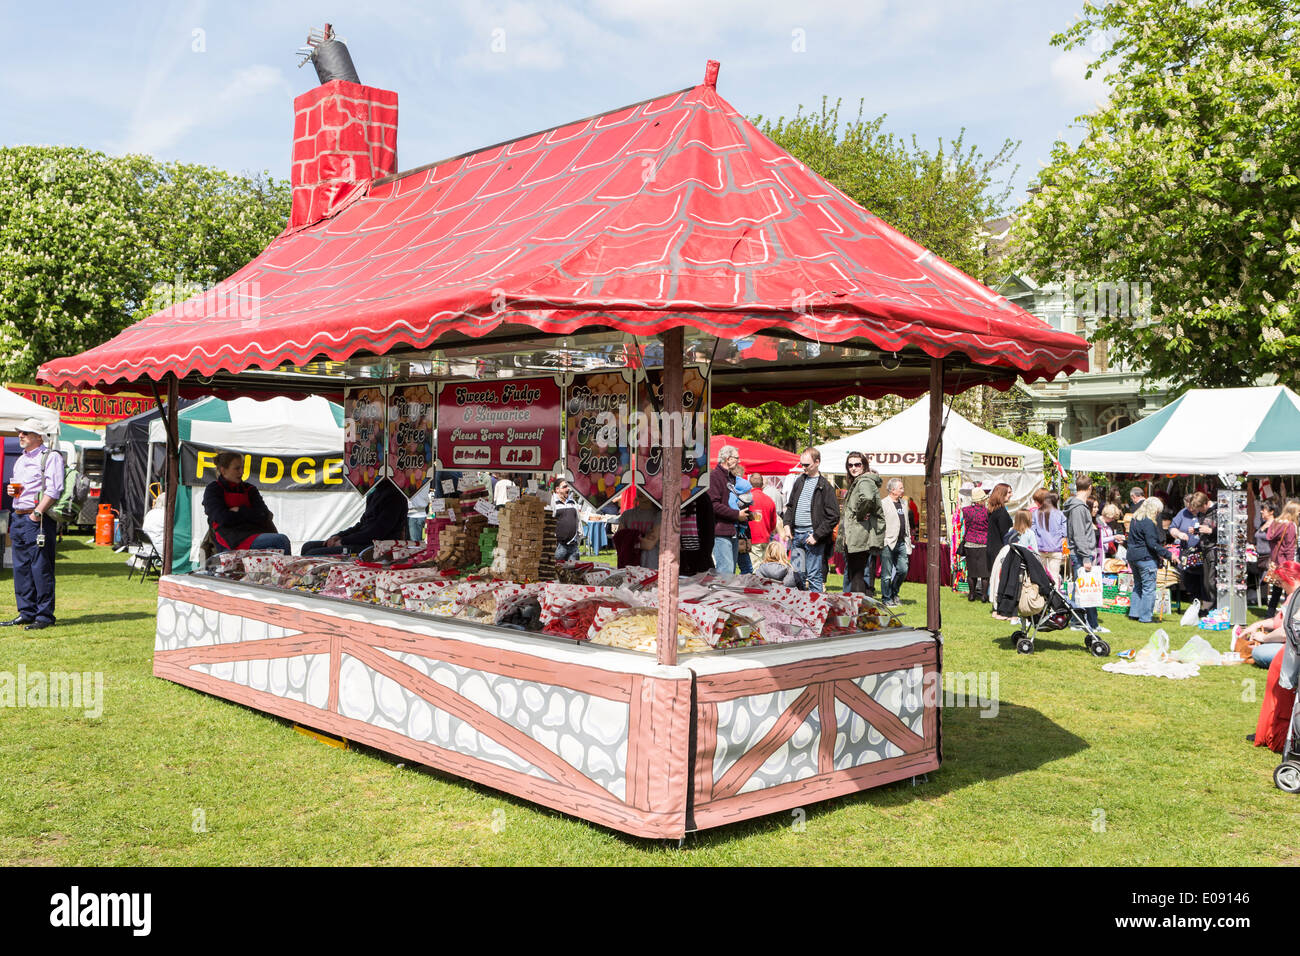 Sweet Shop in shape of House - Stock Image